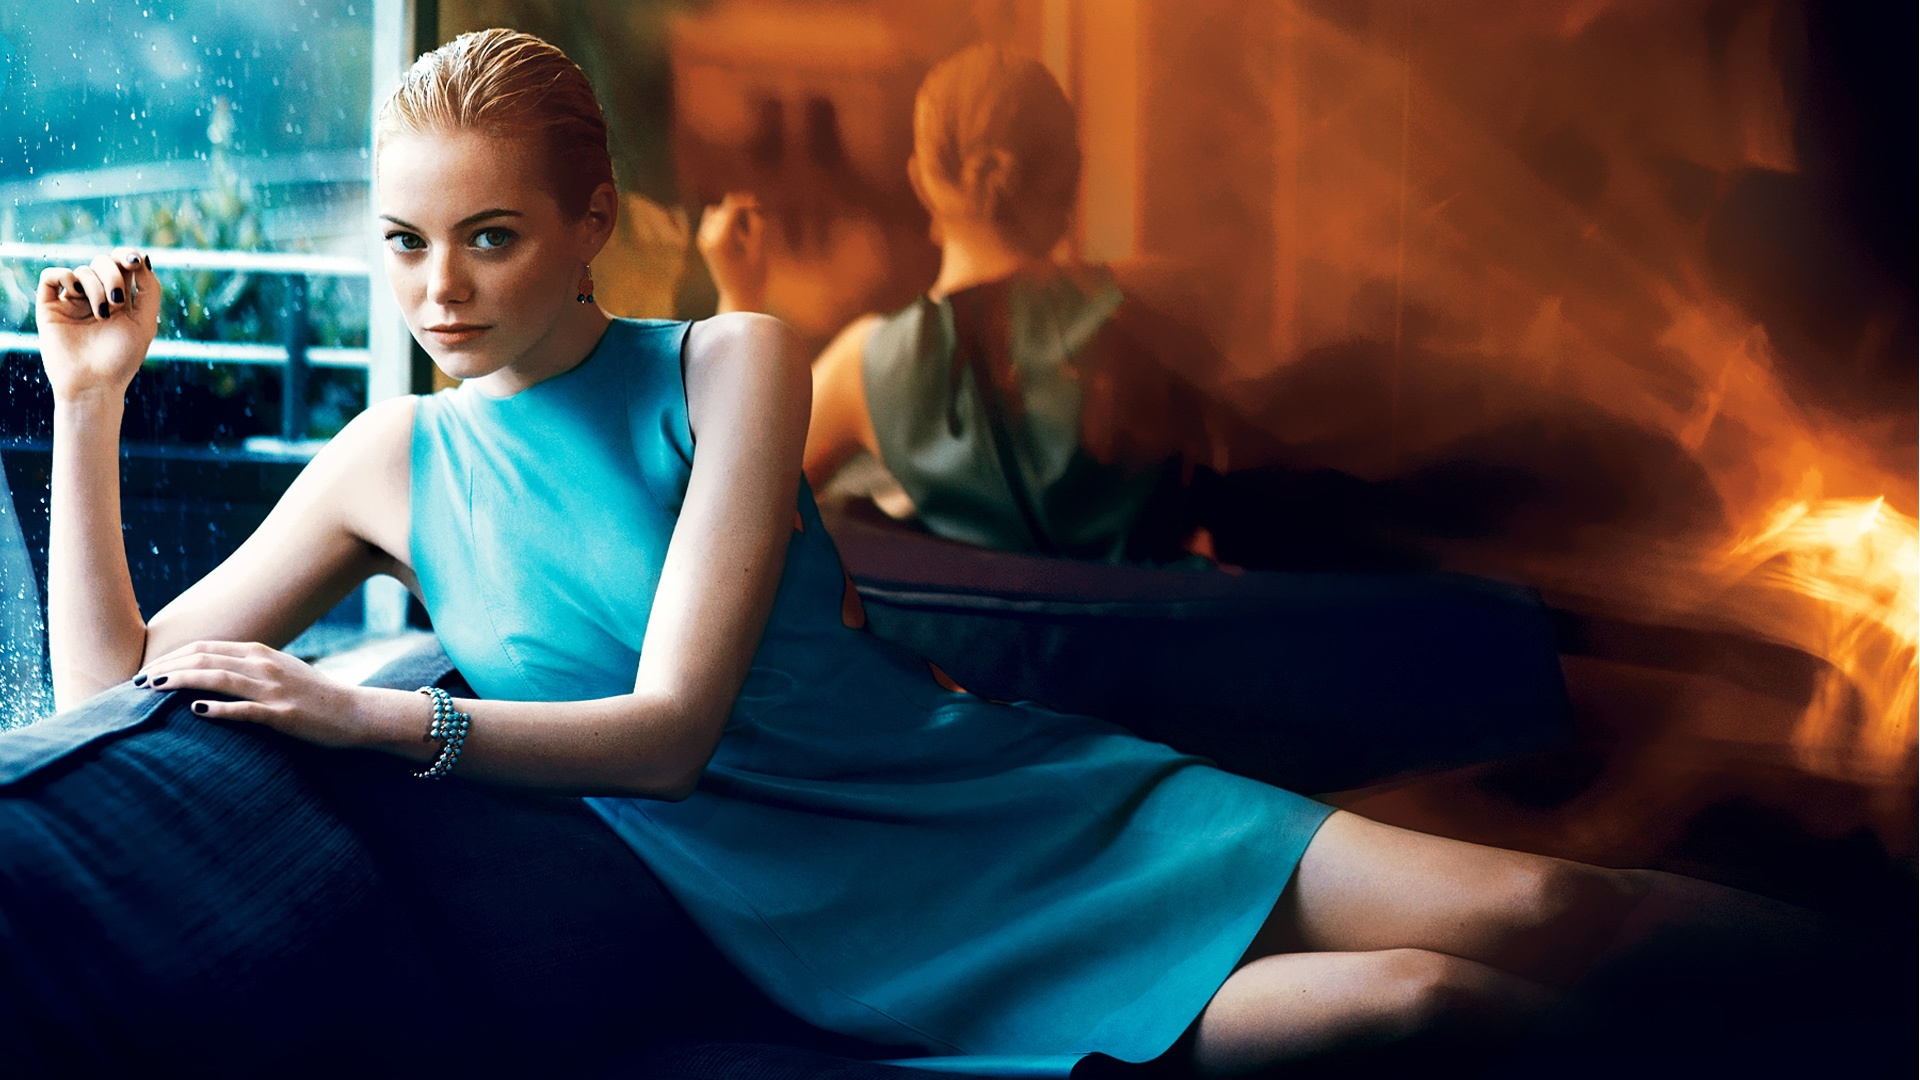 emma stone wallpapers hd a1